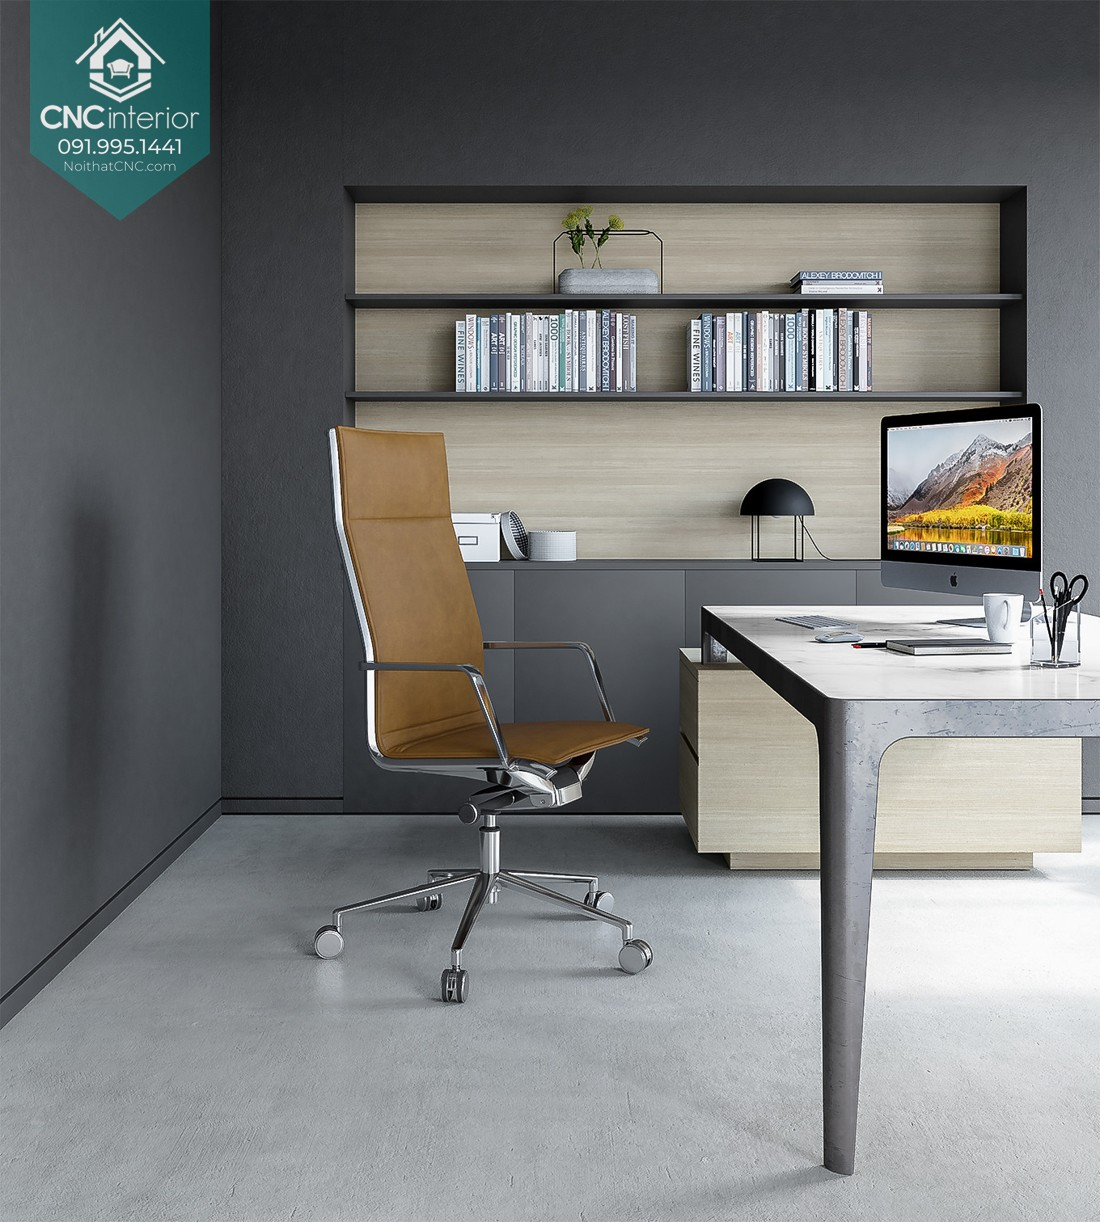 CNC is a supplier of office interior solutions 16